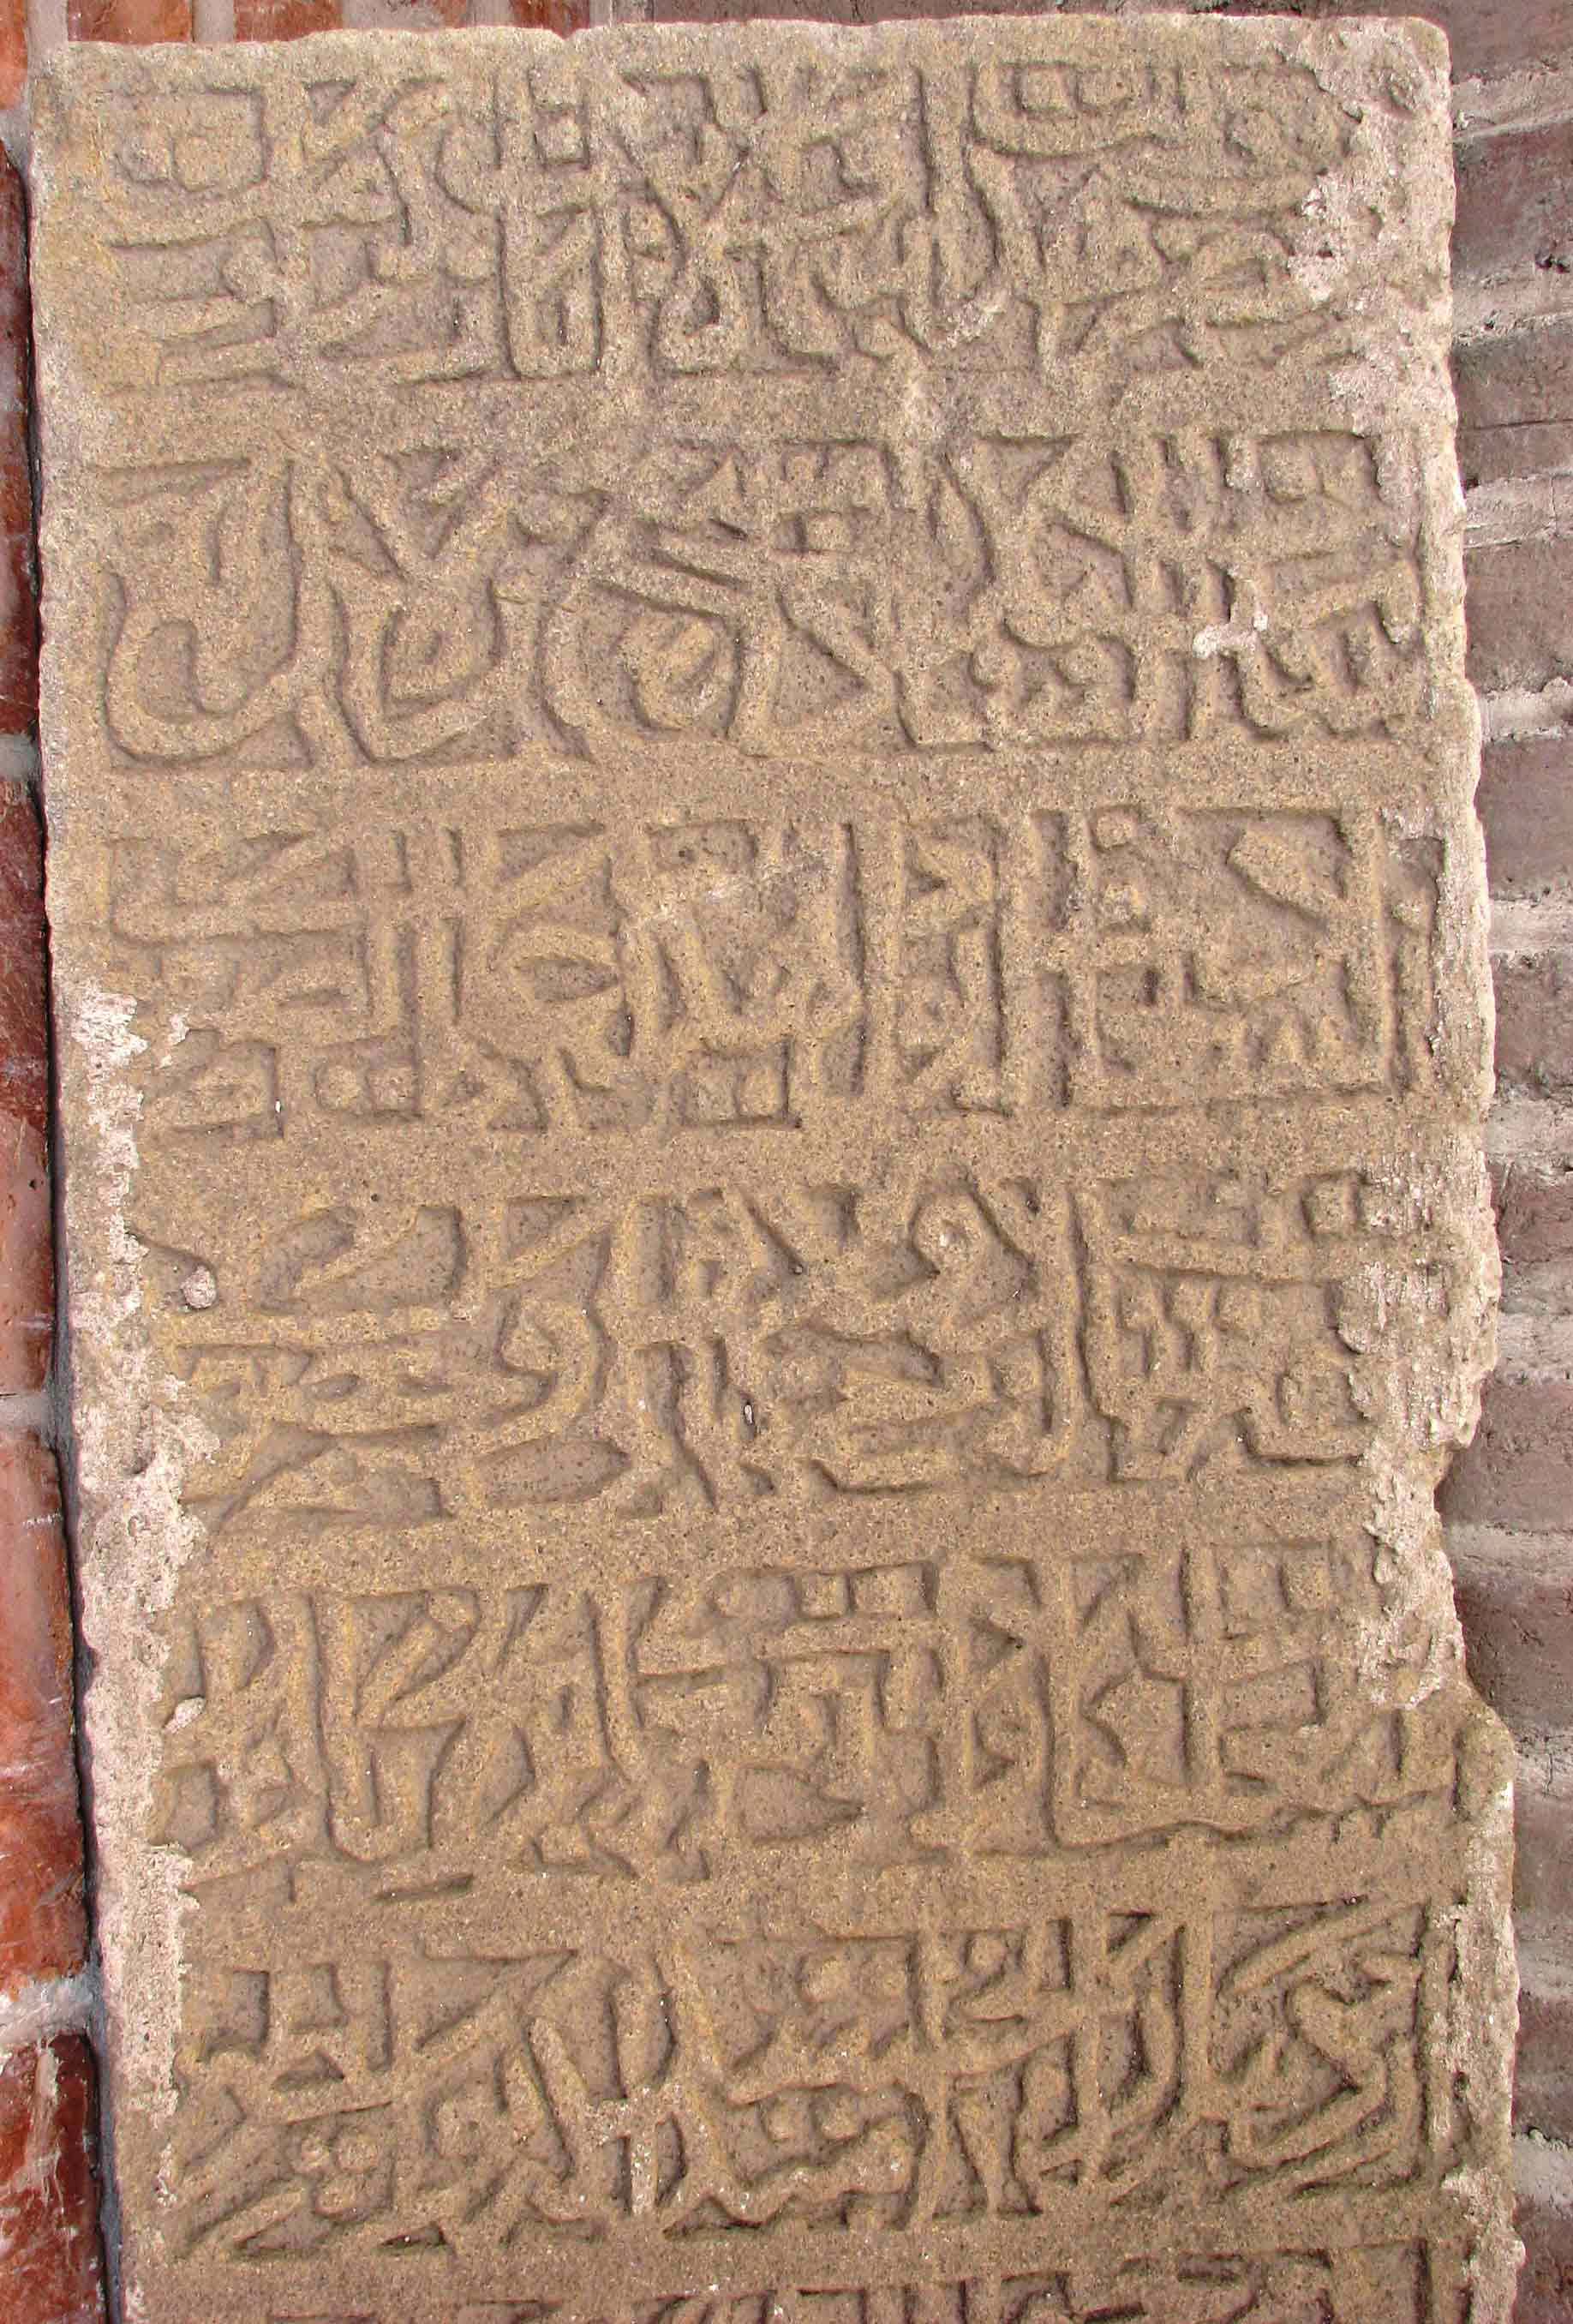 oldest-Stone-writing-proving-Safavid-Siadat-and-desendency-from-Prophey-Muhammad---Web-optimized